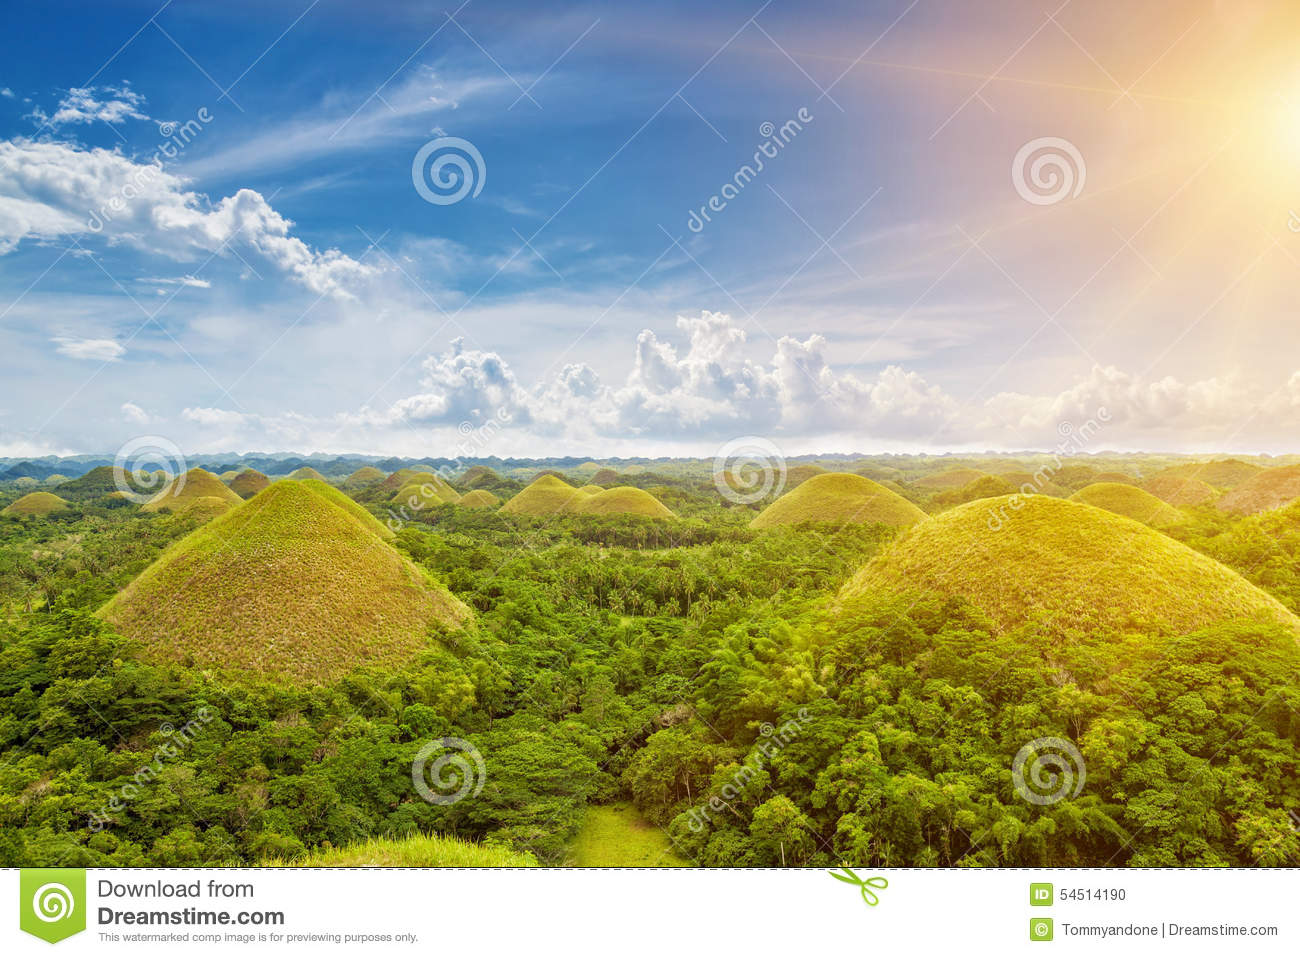 Bohol Chocolate Hills Royalty Free Stock Photo.